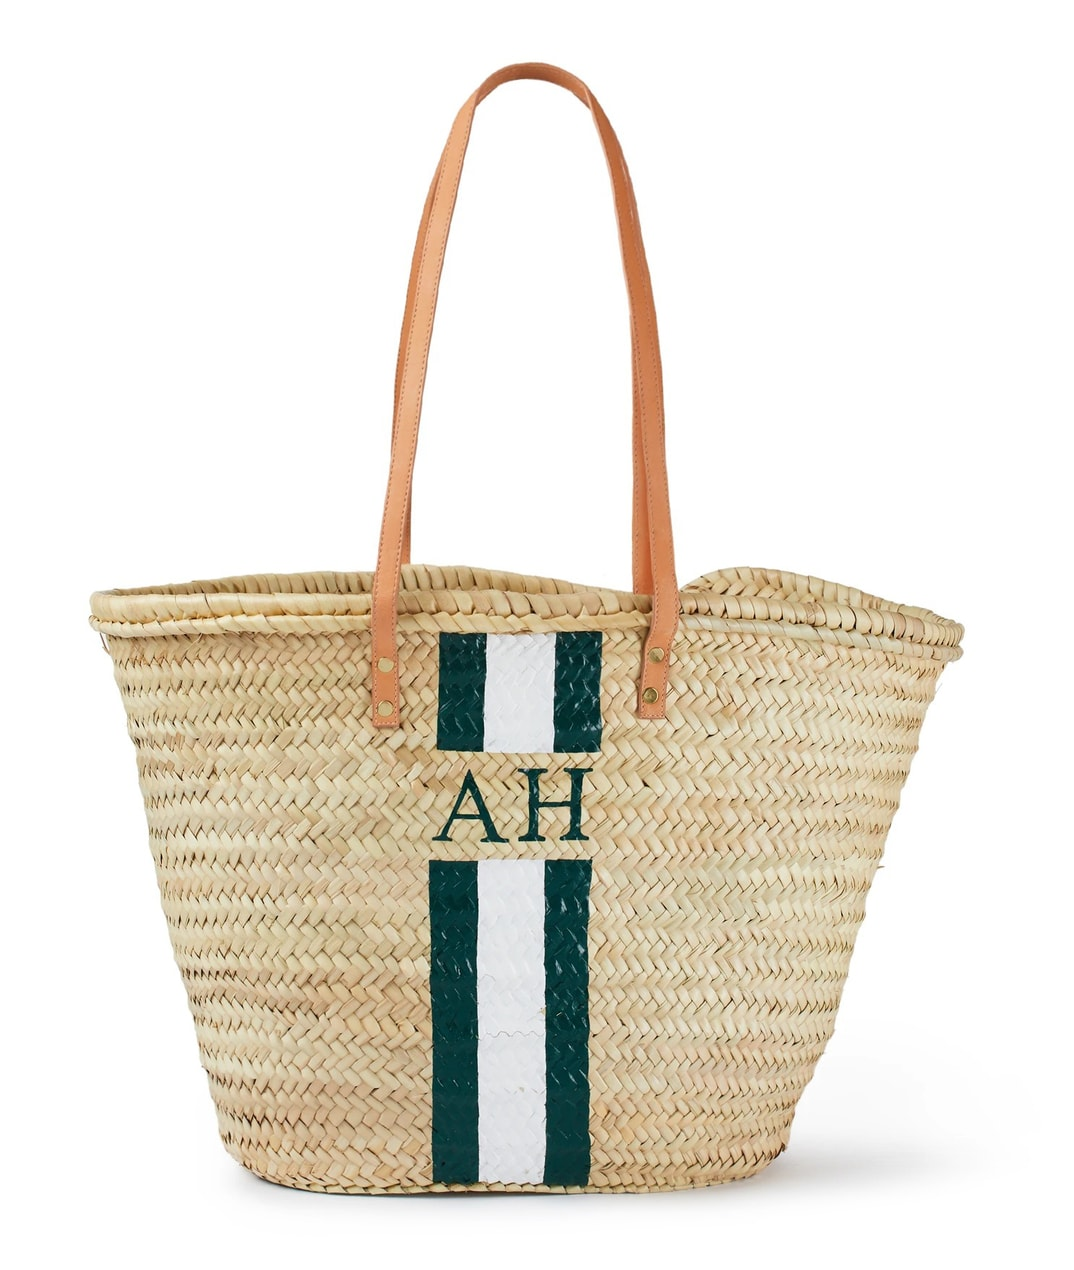 Rae Feather Long Leather Handle Basket Green